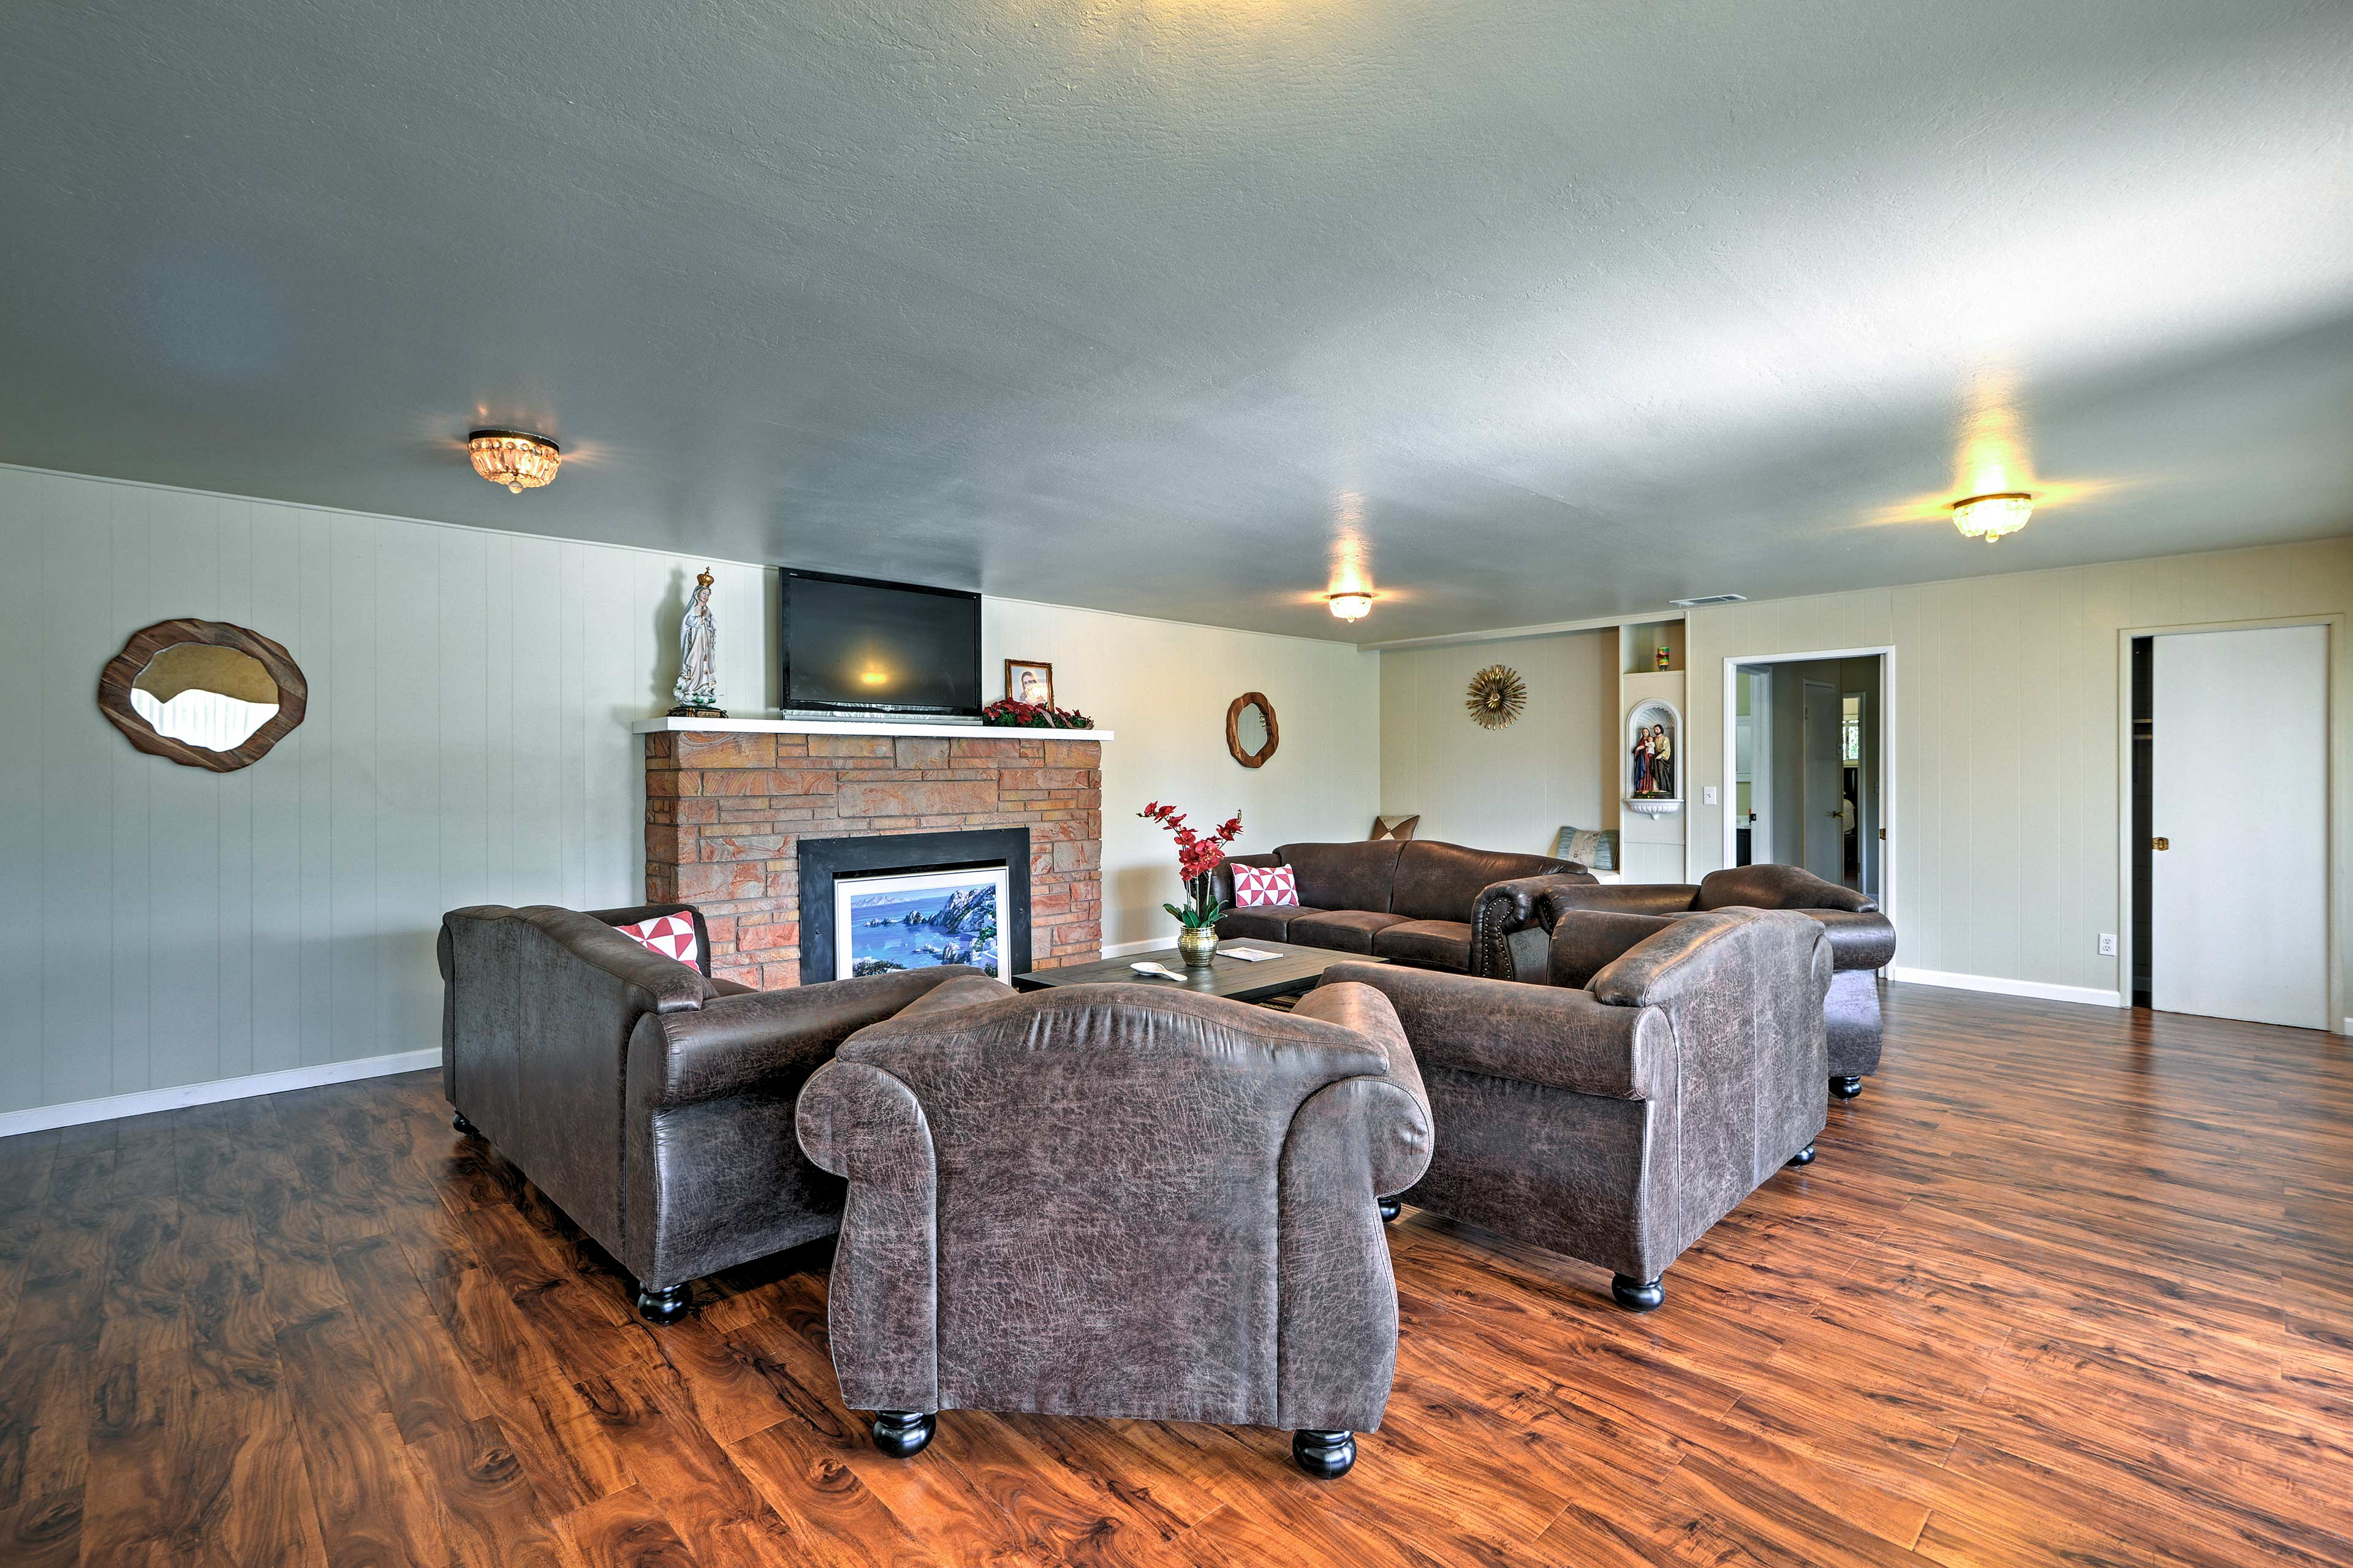 The living room boasts a wood-burning fireplace, flat-screen TV and comfy sofas.